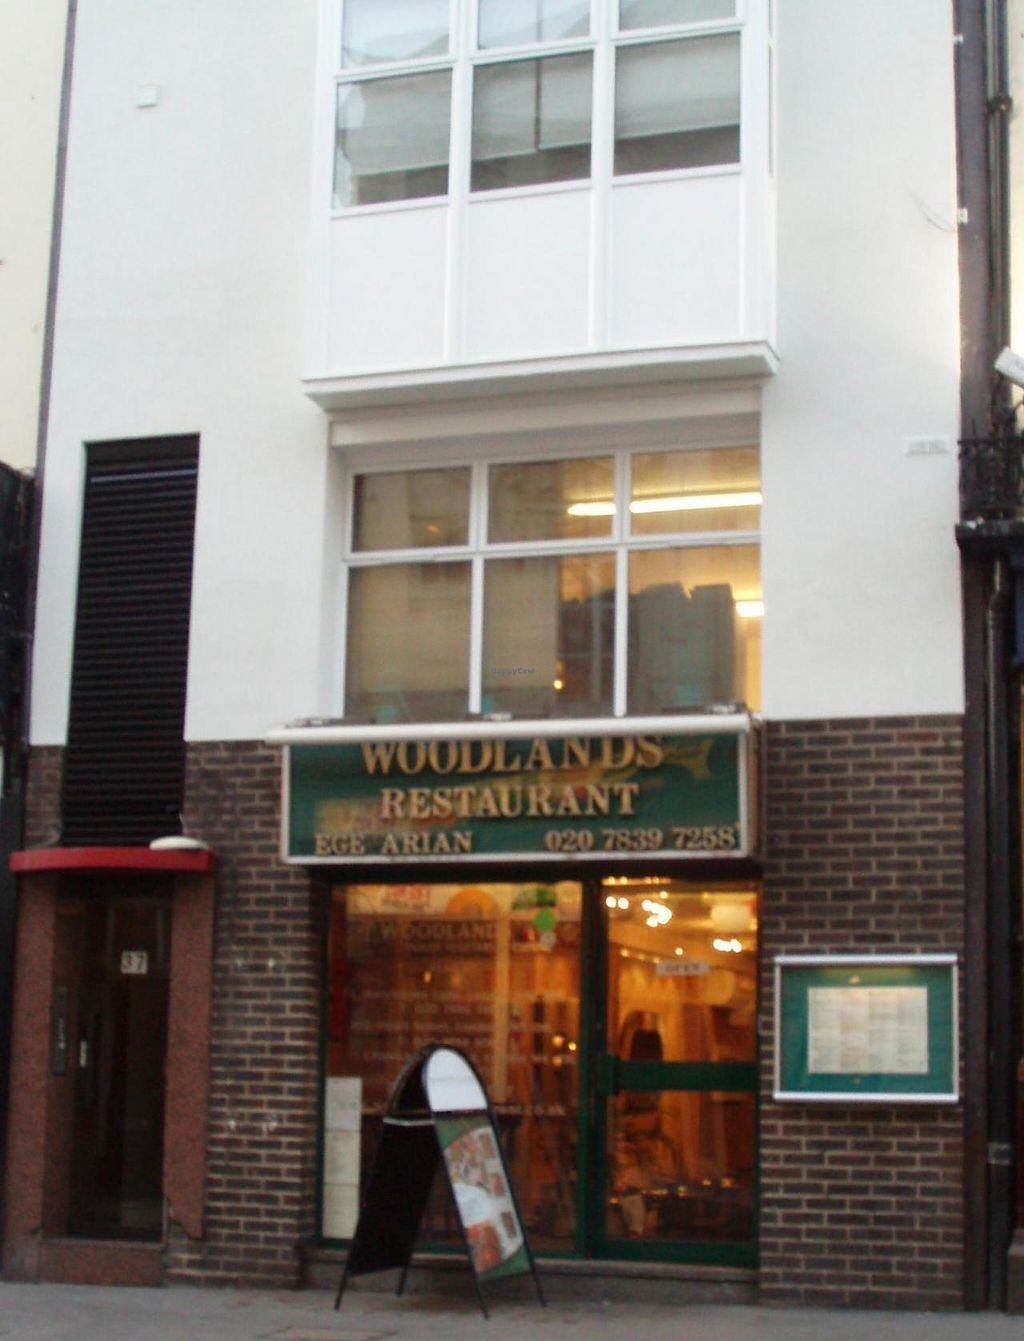 """Photo of Woodlands - Leicester Square  by <a href=""""/members/profile/Pamina"""">Pamina</a> <br/>Woodlands - Leicester Square, London <br/> May 13, 2014  - <a href='/contact/abuse/image/12375/69906'>Report</a>"""